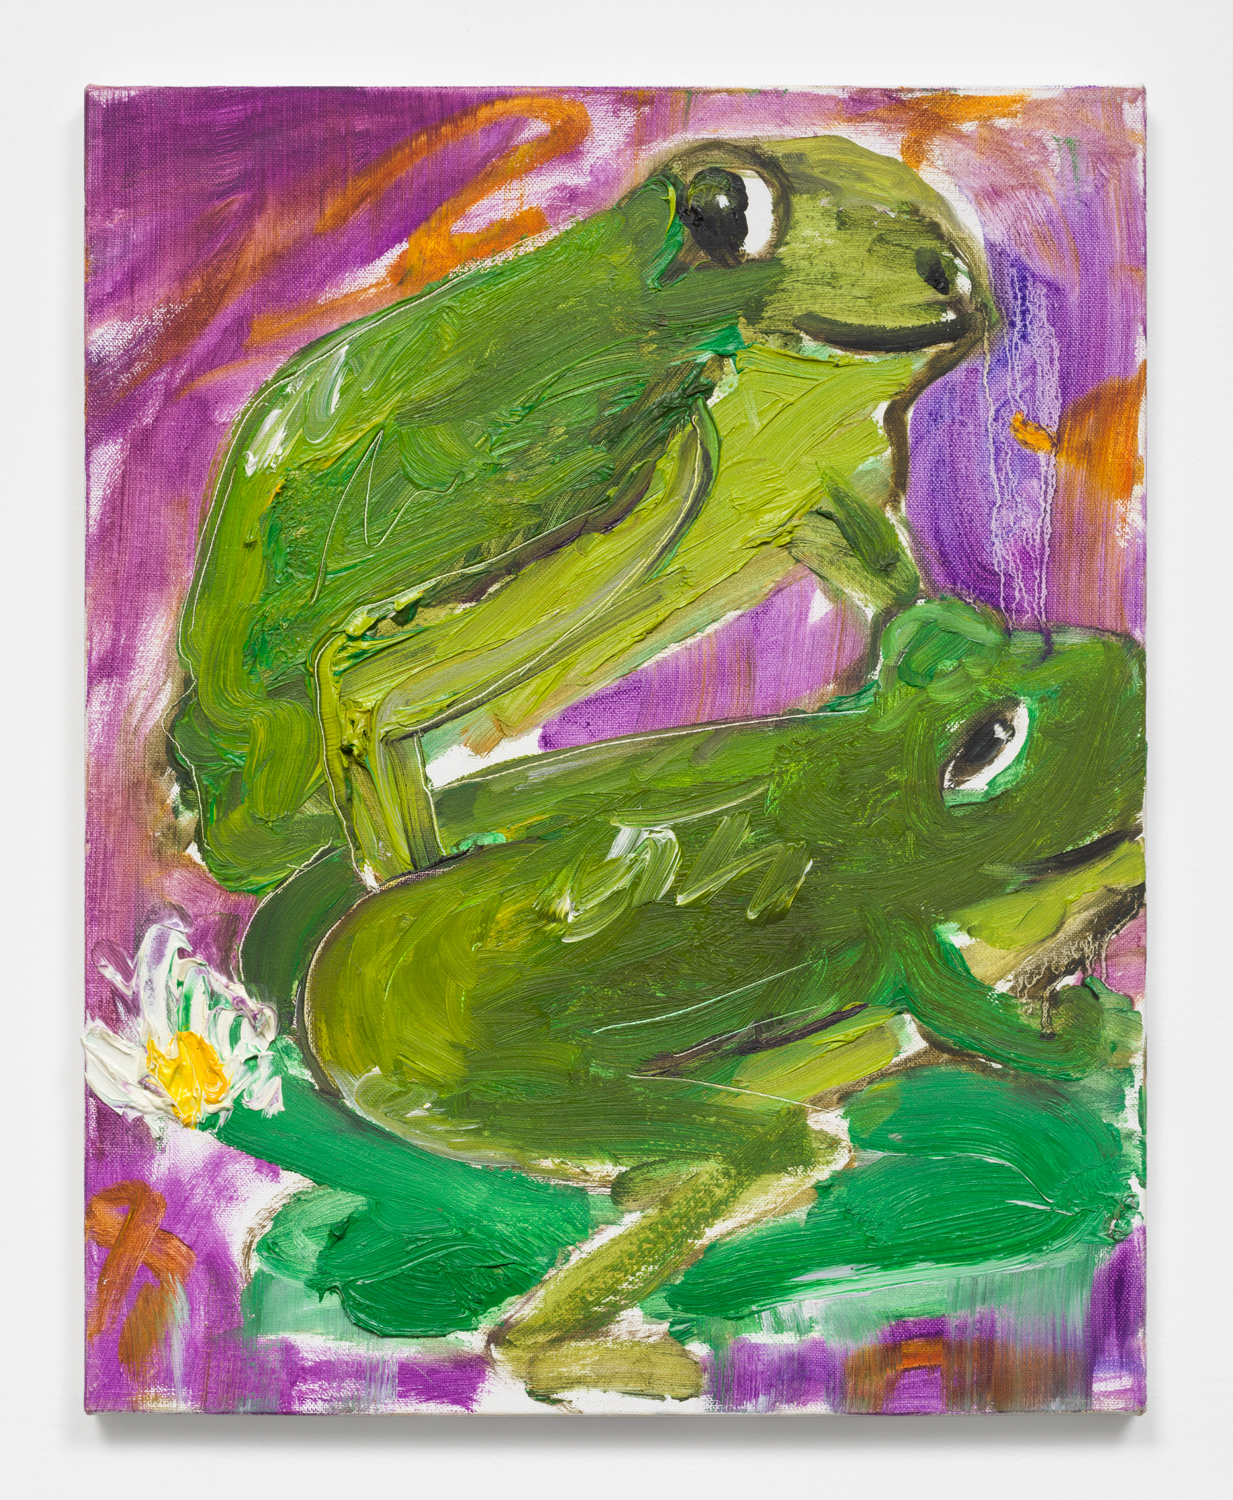 Keith Boadwee ClubPaint_Frogs Fisting_2016_Lo.jpg